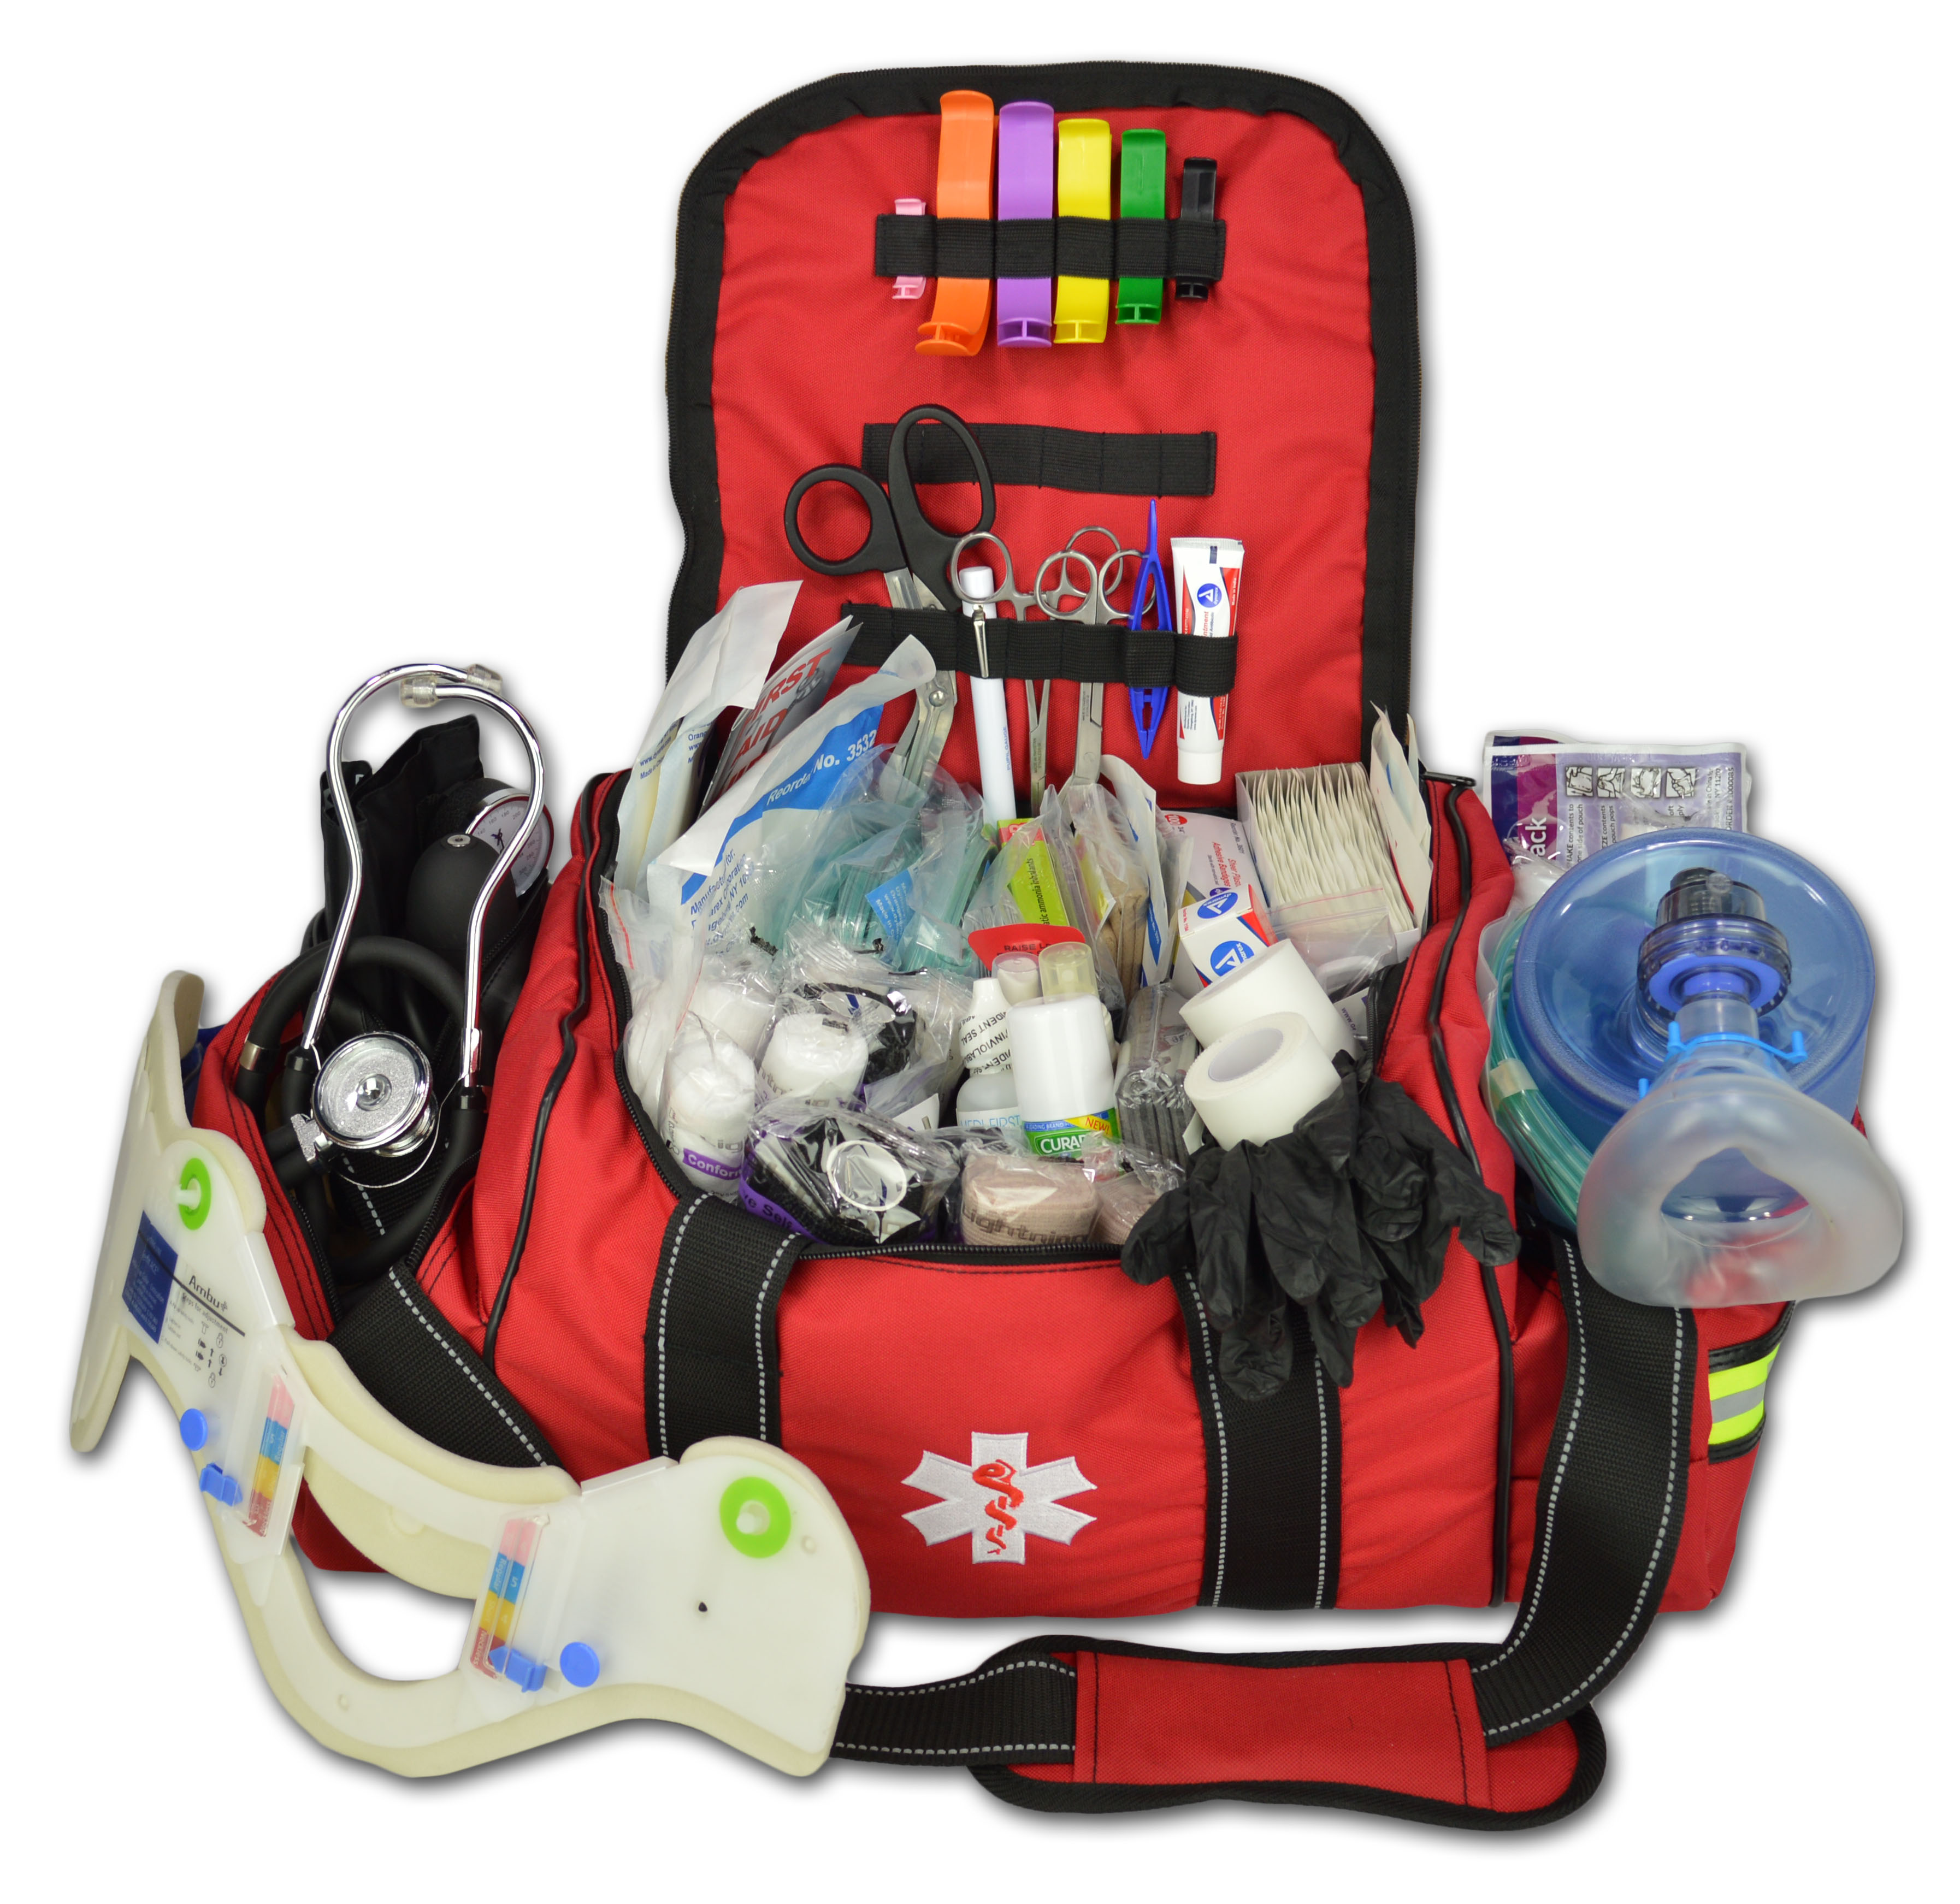 Lightning X Deluxe Stocked Large EMT First Aid Trauma Bag Fill Kit w/ Emergency Medical Supplies - Red